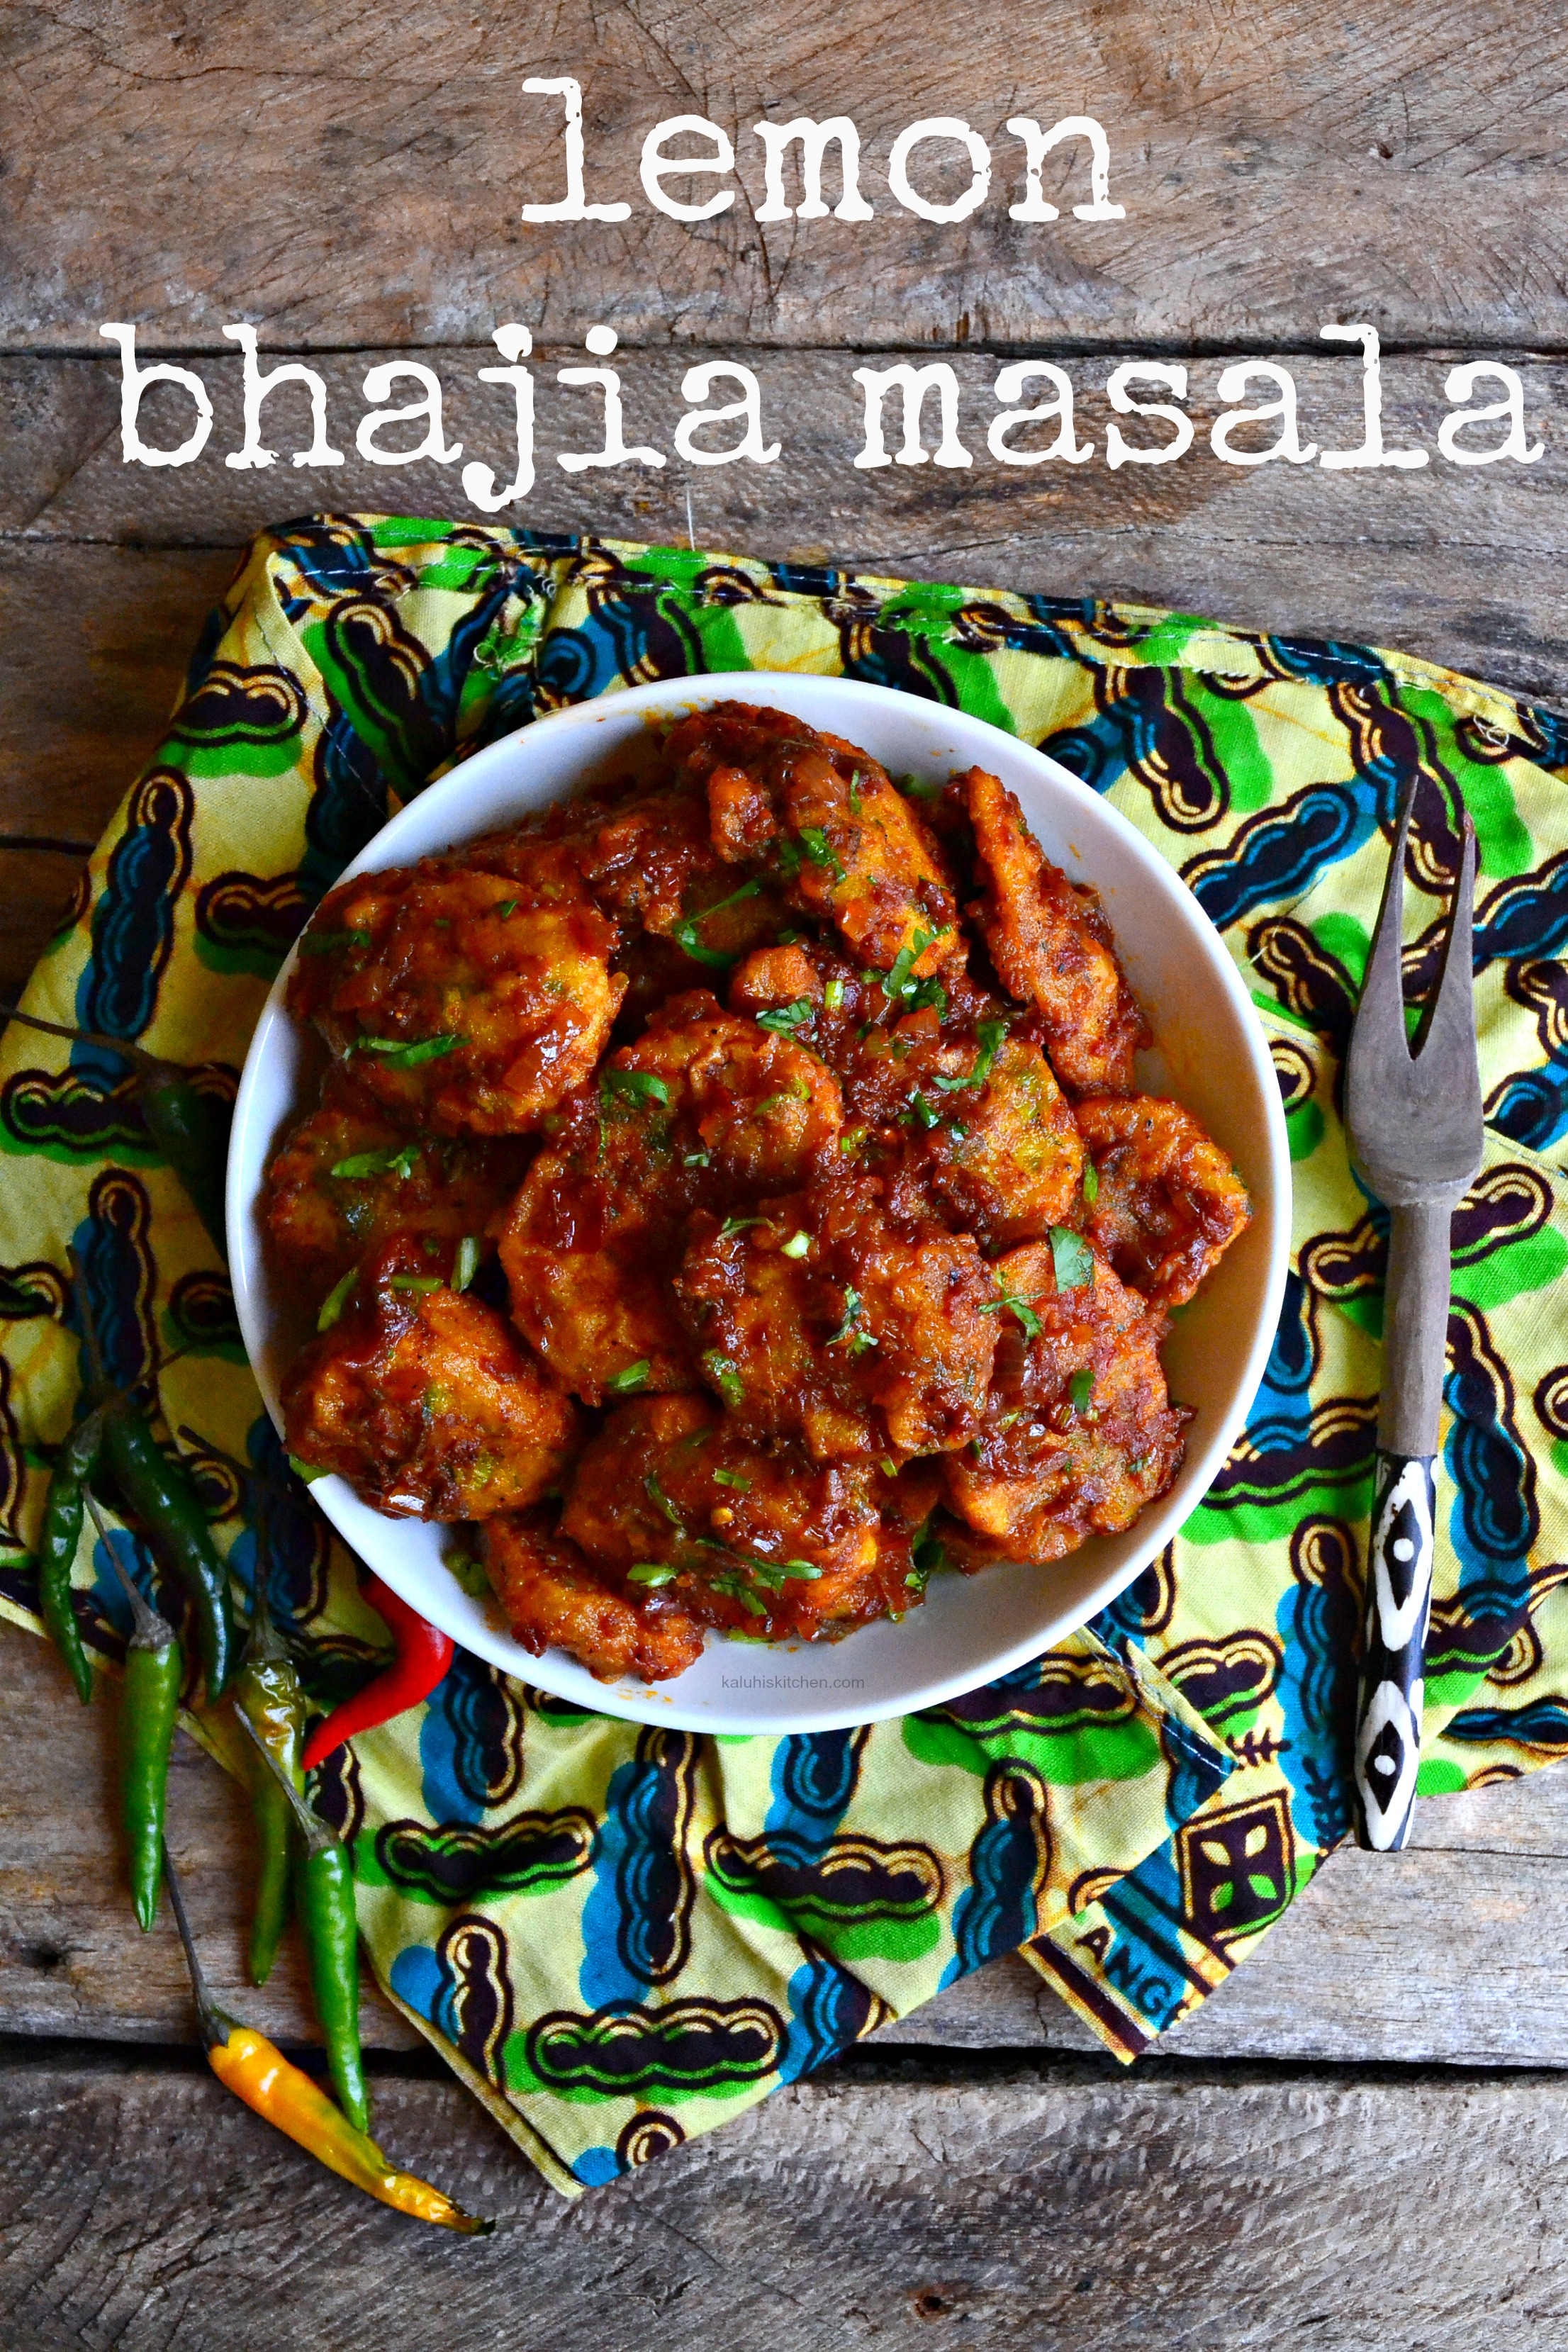 kenyan-food_kenyan-cuisine_best-food-from-around-the-world_how-to-make-bhajia_bhajia-recipes_kaluhiskitchen-com